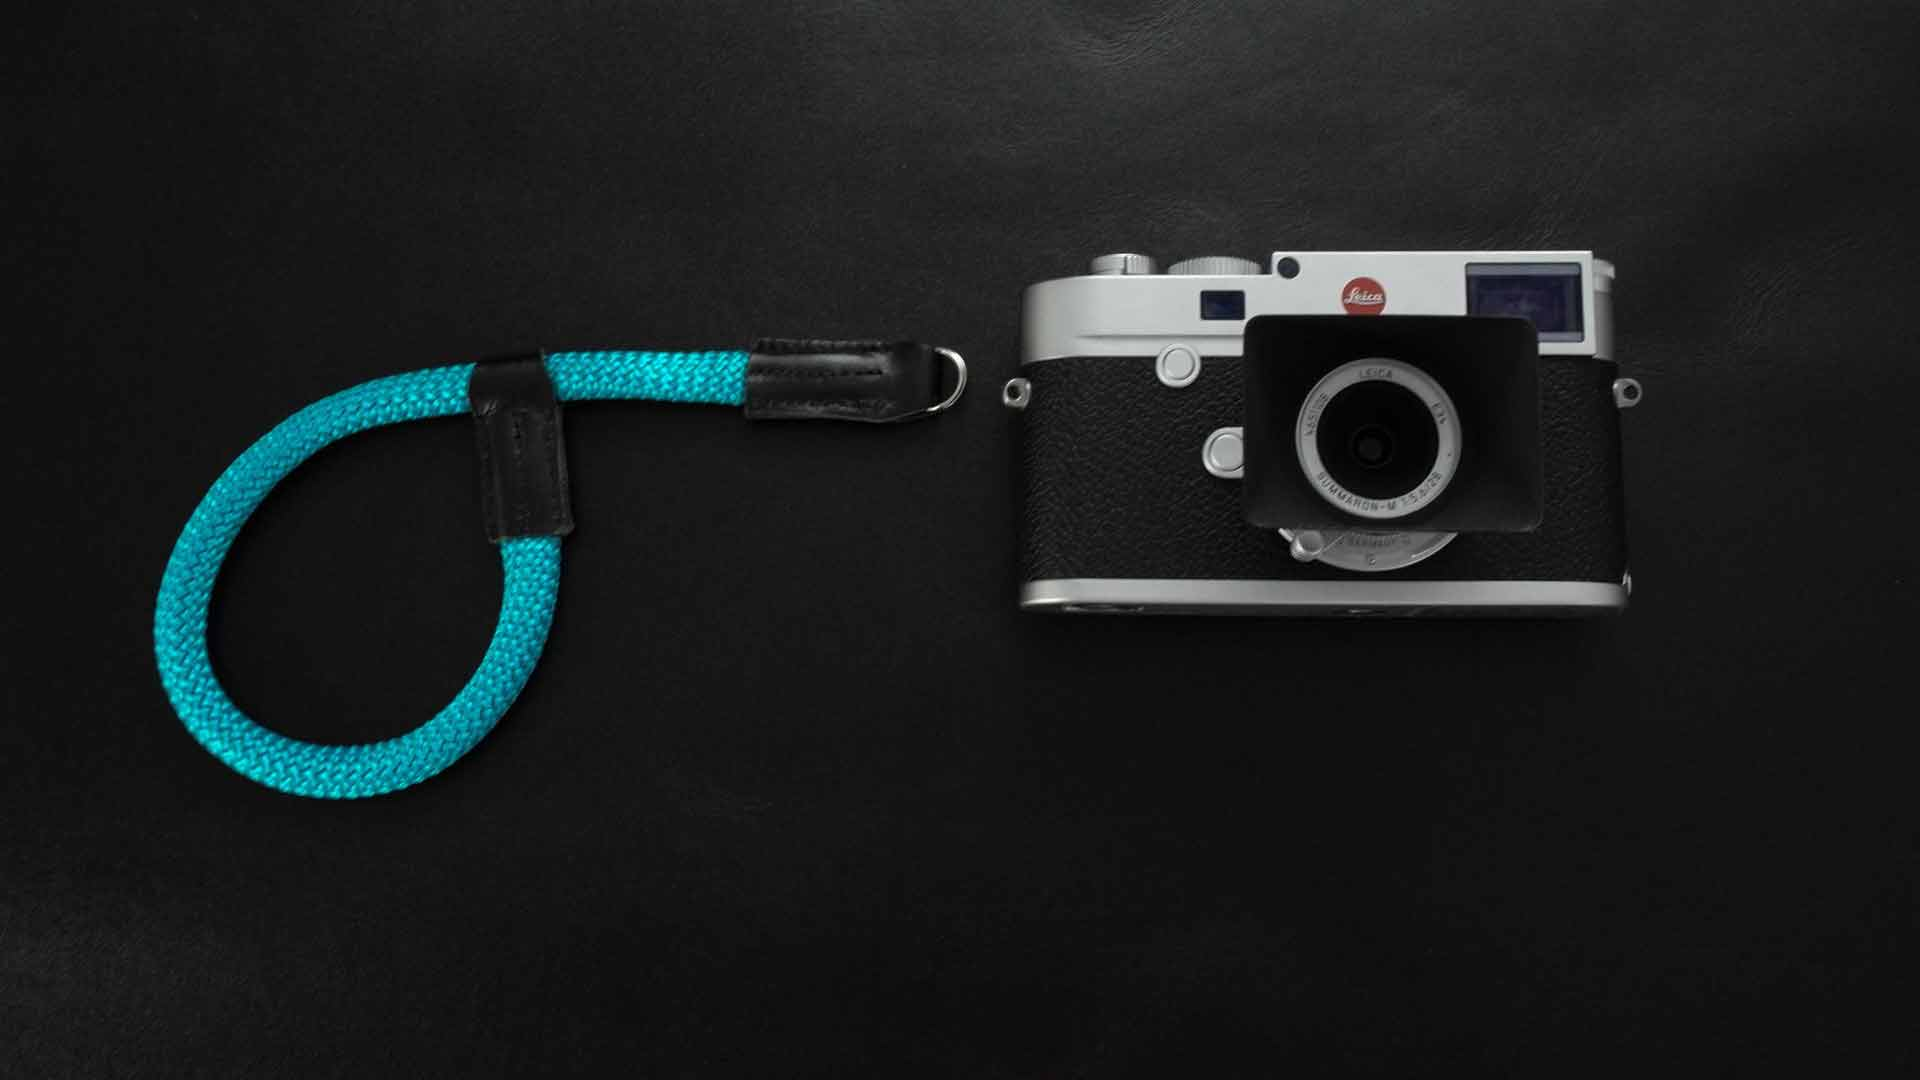 wrist straps, camera wrist strap, camera wrist straps, camera hand straps, best wrist straps, best camera wrist strap, best camera hand straps, dslr wrist strap, wrist straps for camera, best camera wrist strap, camera leather wrist strap, best camera wrist straps, dslr camera wrist strap, turquoise wrist strap